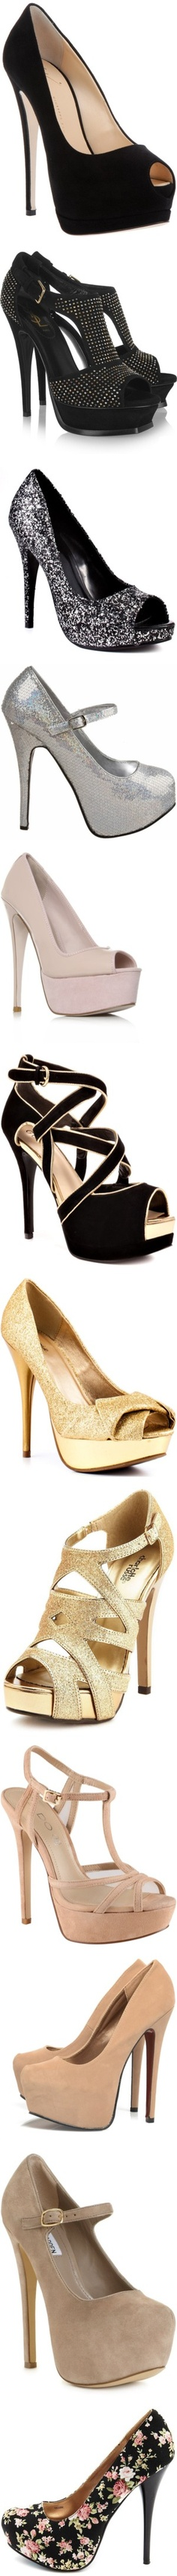 """Zapatos de Taco Fino,,"" by roo-66-roo ❤ liked on Polyvore"